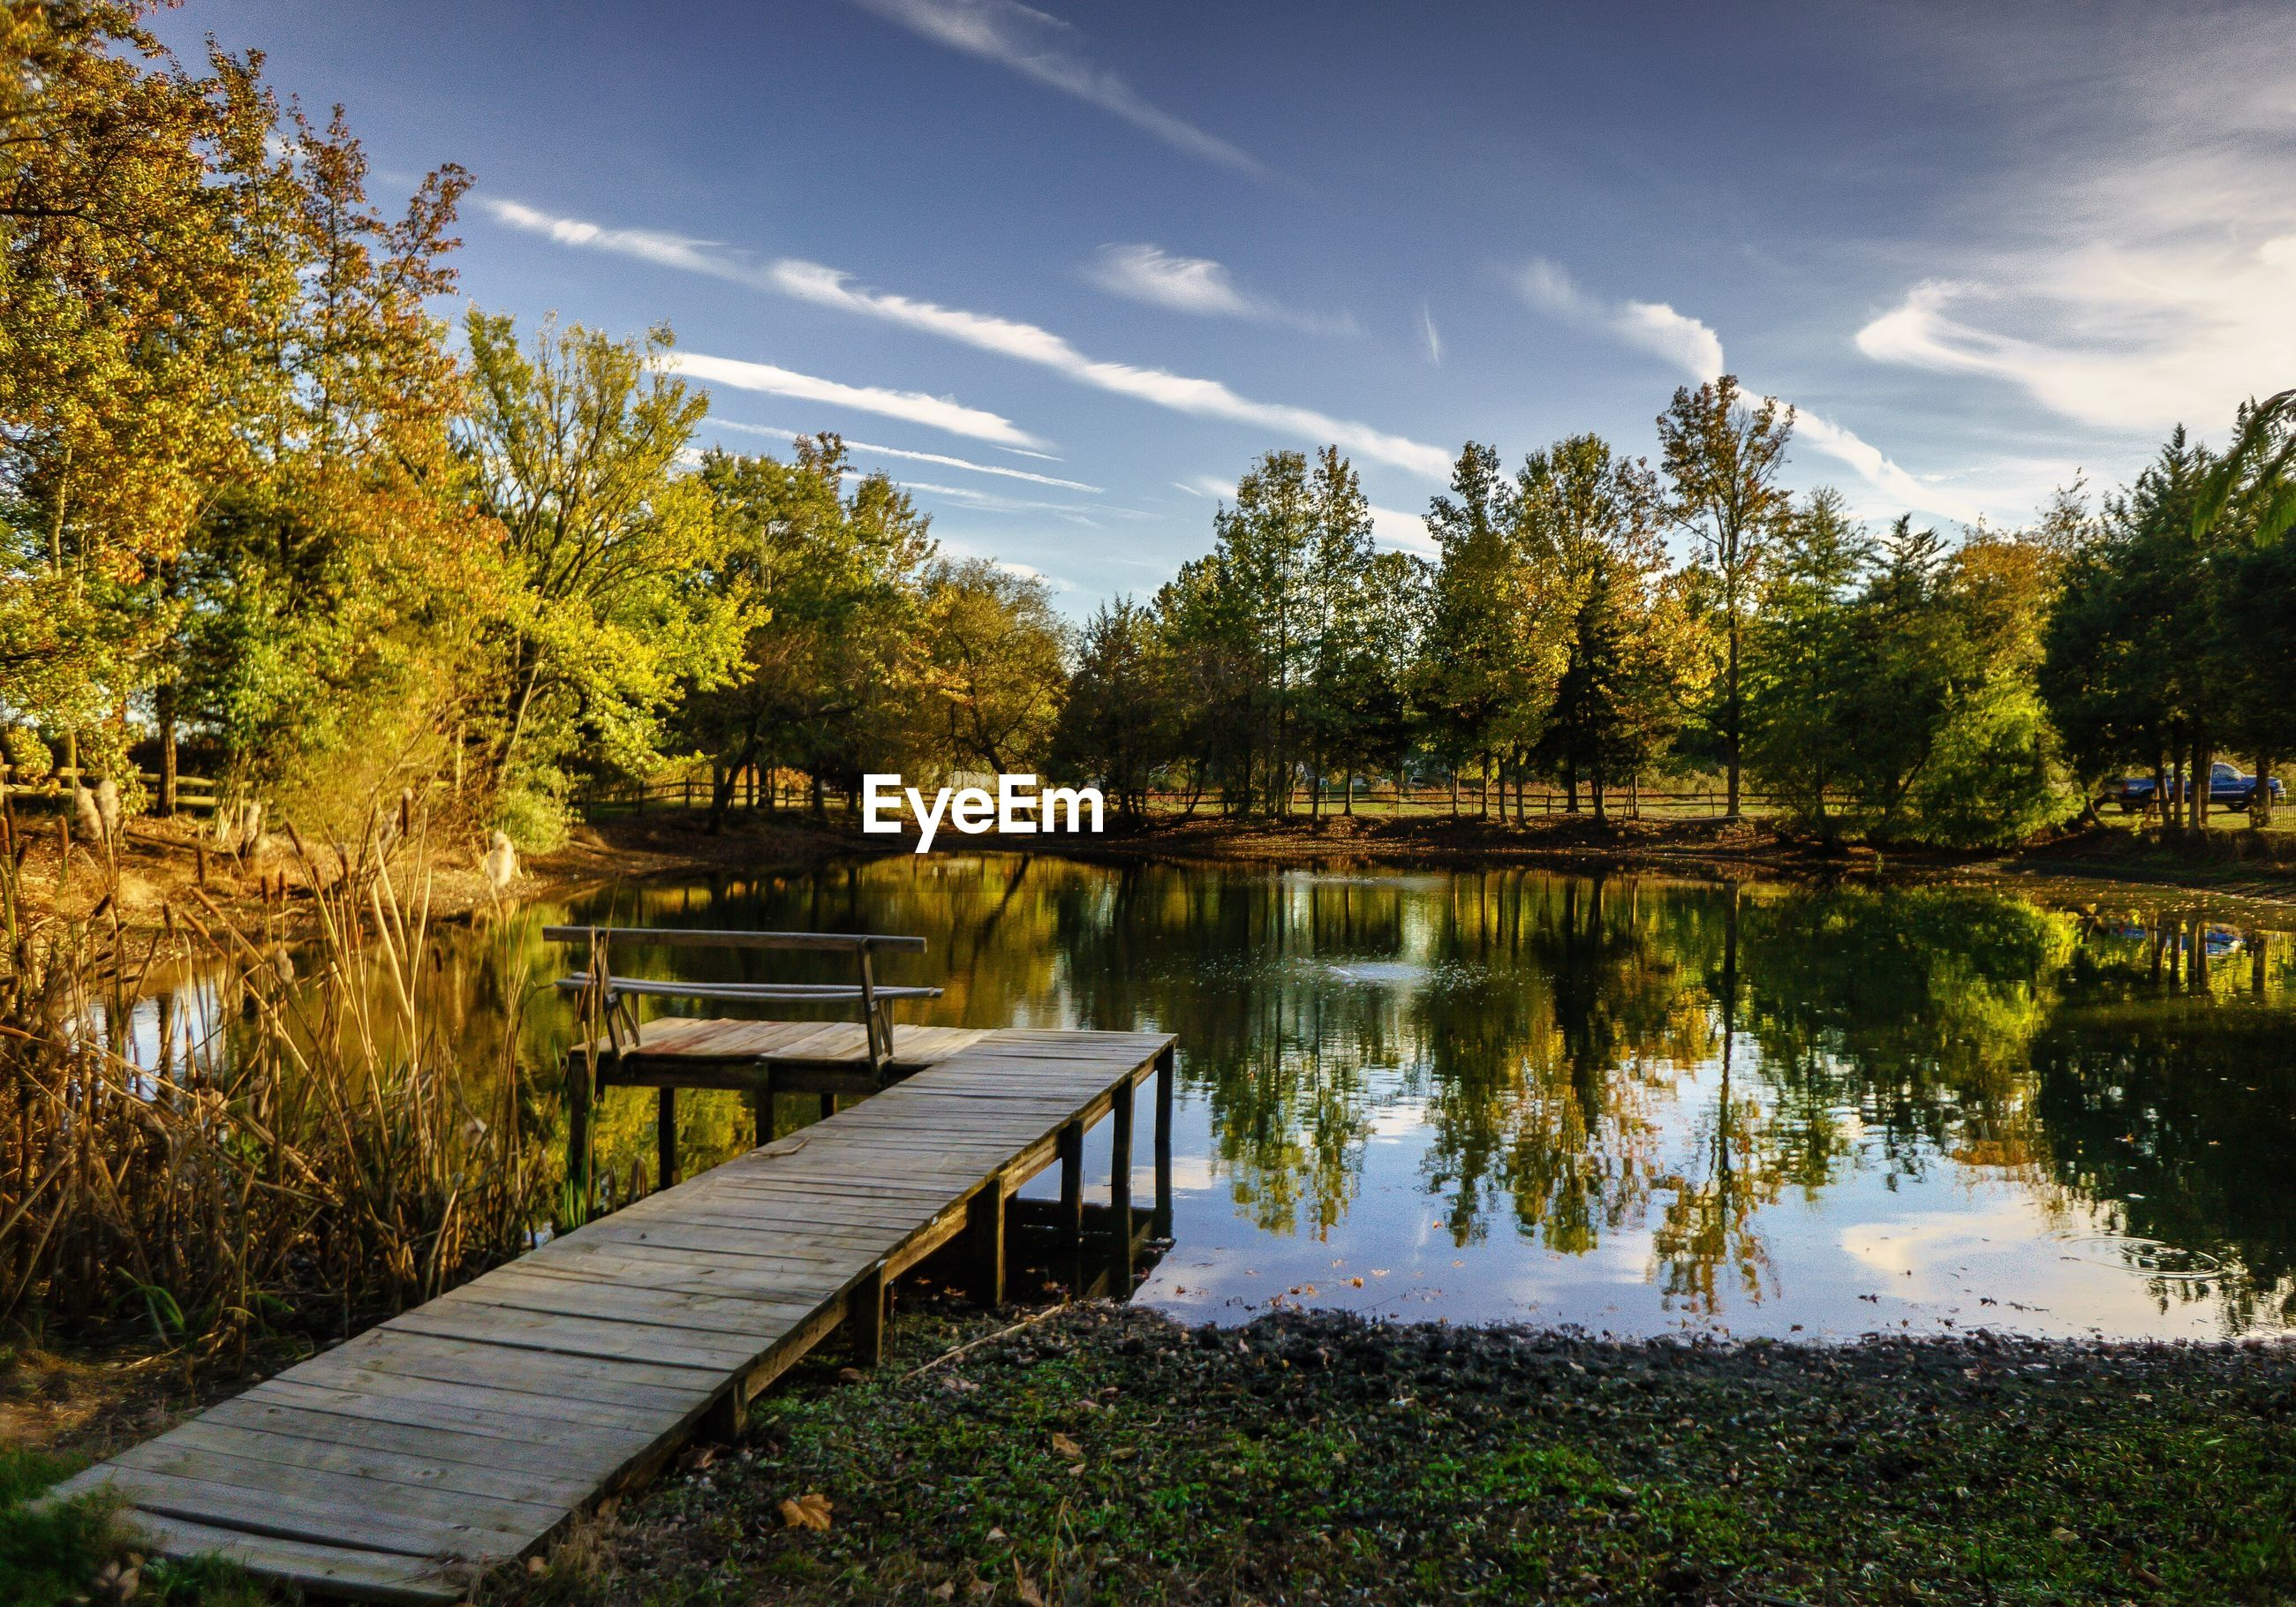 SCENIC VIEW OF LAKE AGAINST TREES